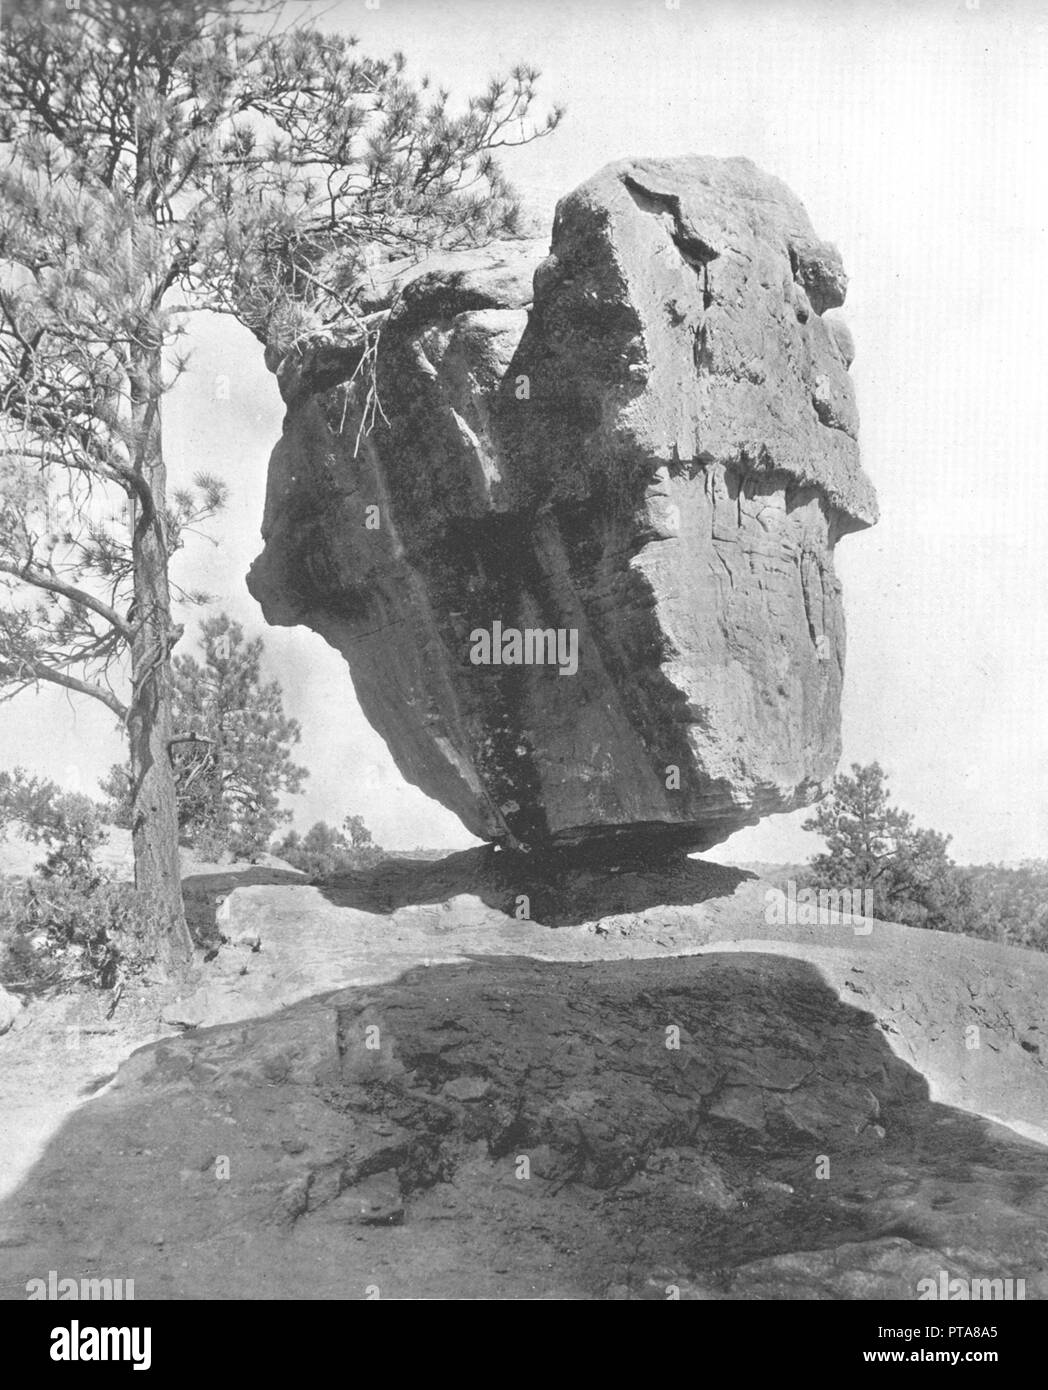 Balanced Rock, Garden of the Gods, Colorado, USA, c1900. Rock formation caused by erosion over millions of years. From Scenic Marvels of the New World edited by Prof. Geo.R. Cromwell. [C.N.Greig & Co., c1900] - Stock Image